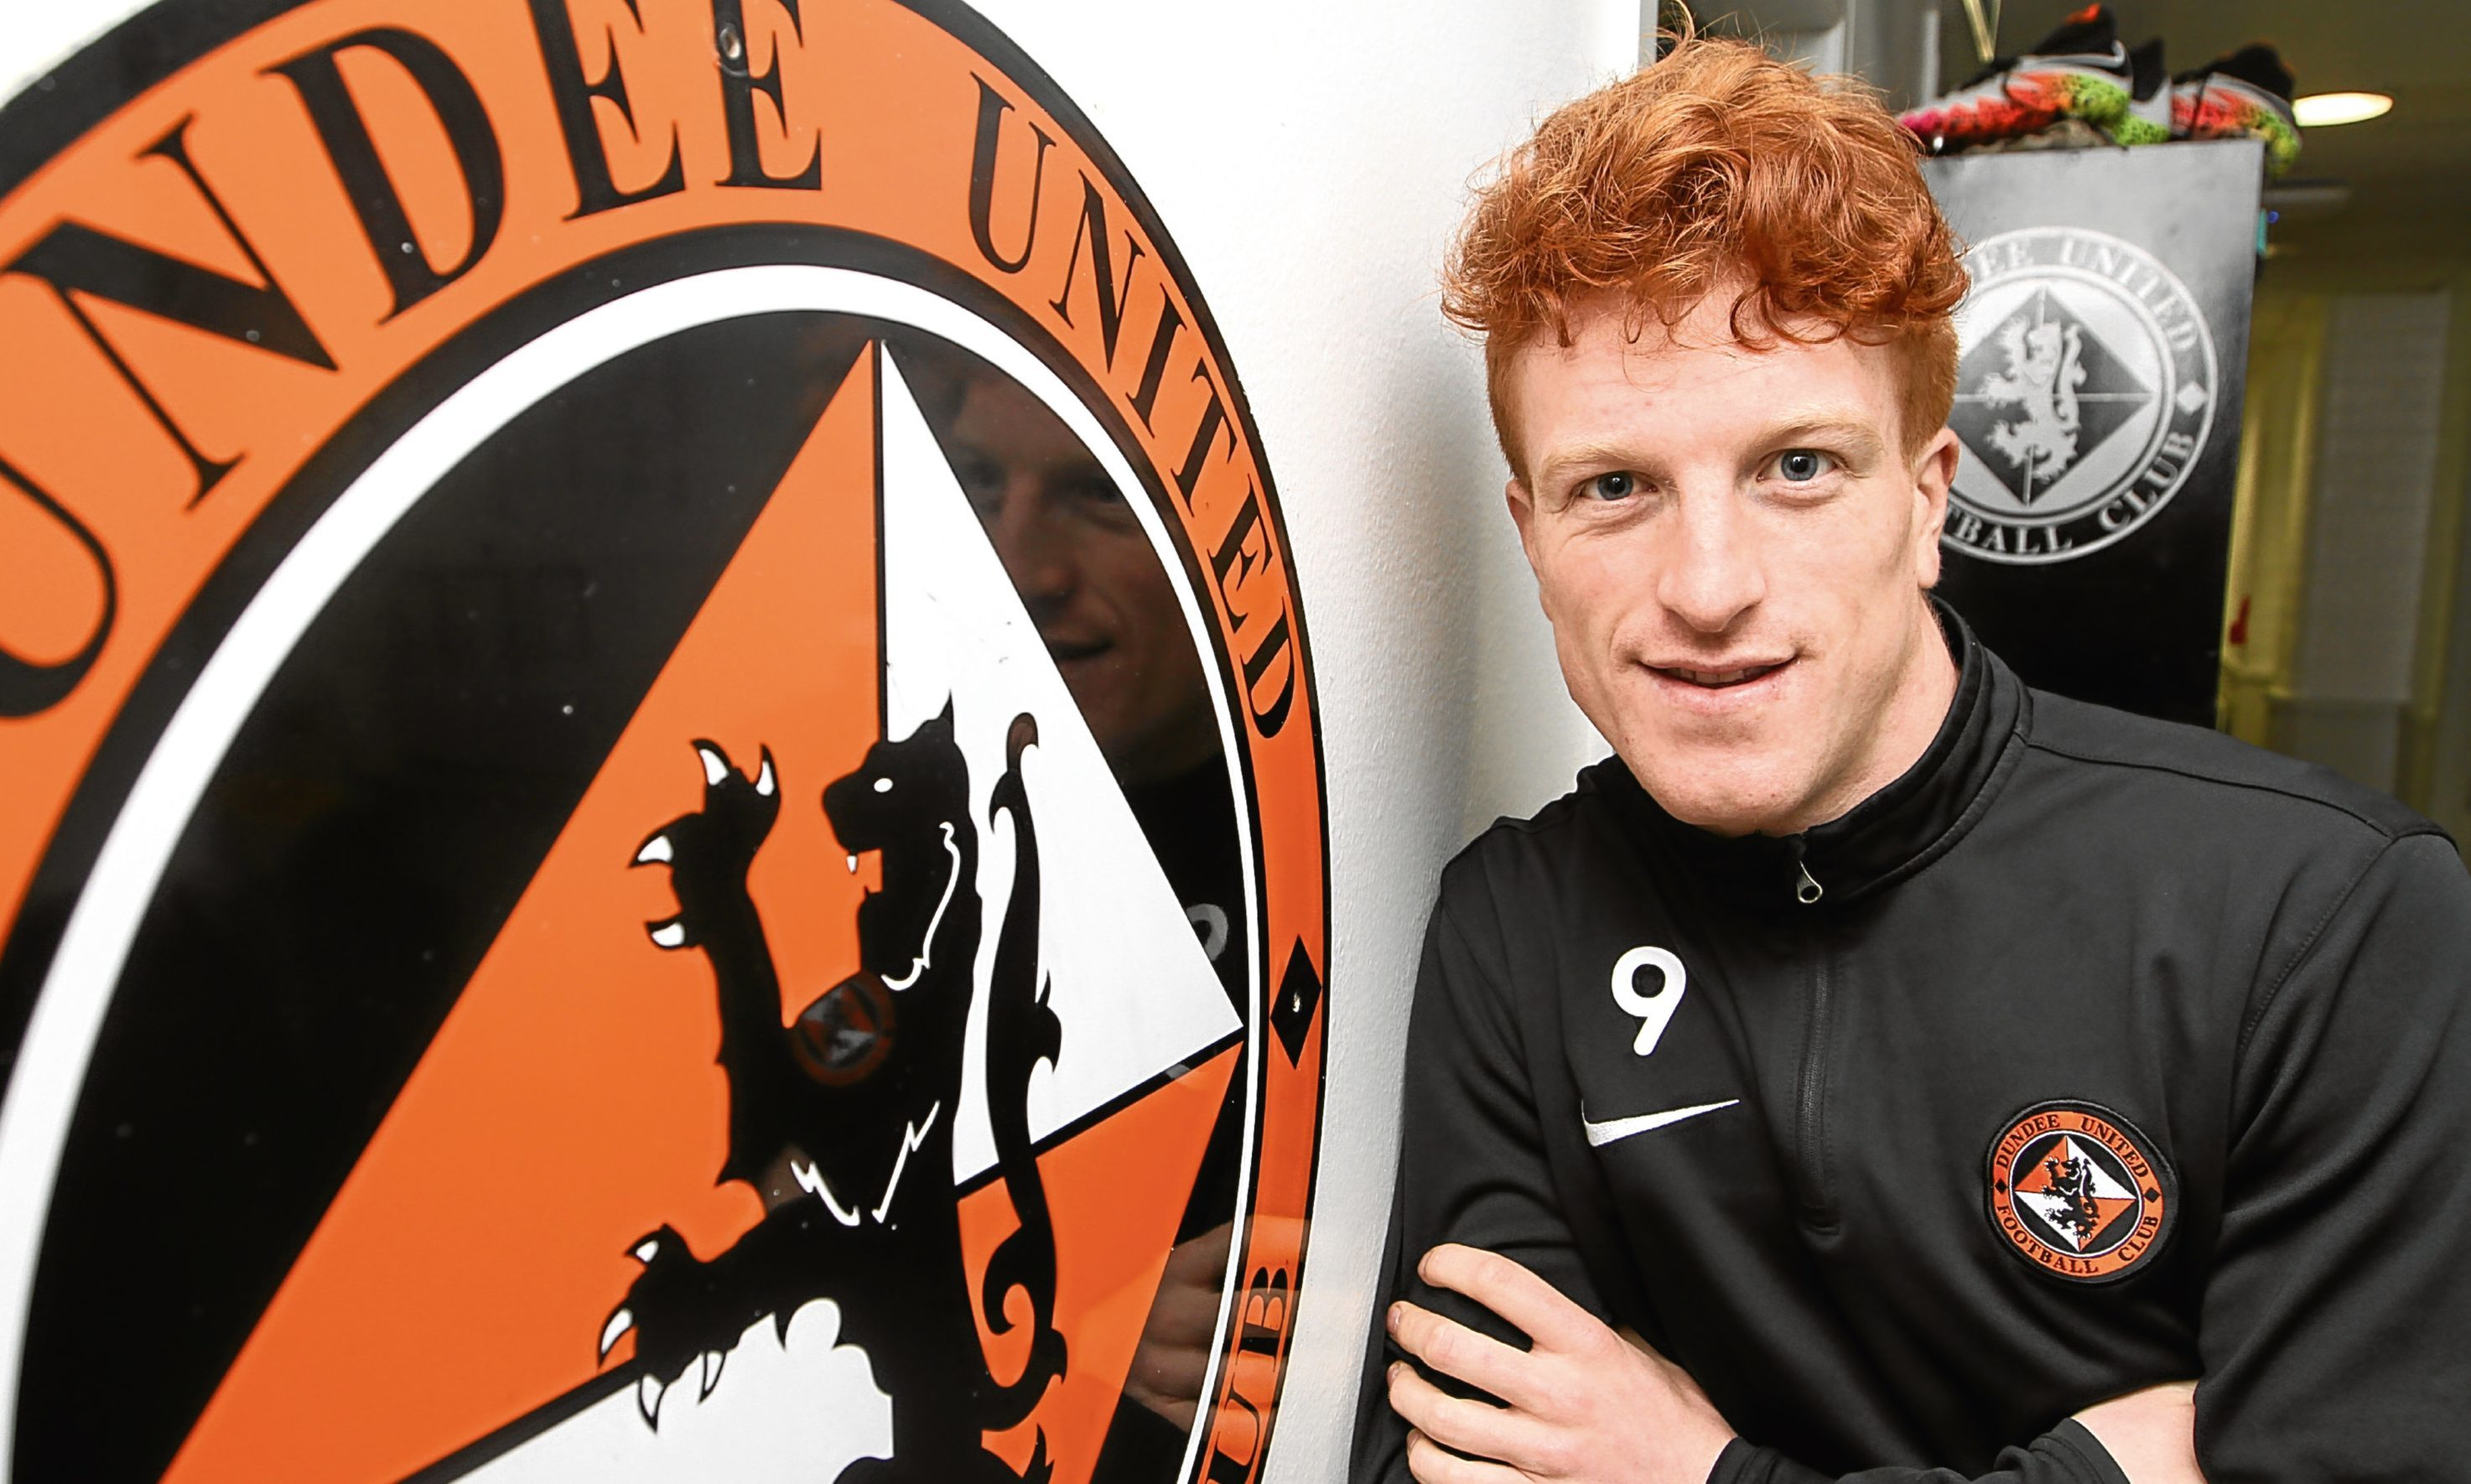 Dundee United striker Simon Murray knows continuing to put on good displays — starting with a win against Morton — will go a long way to securing his future at Tannadice.